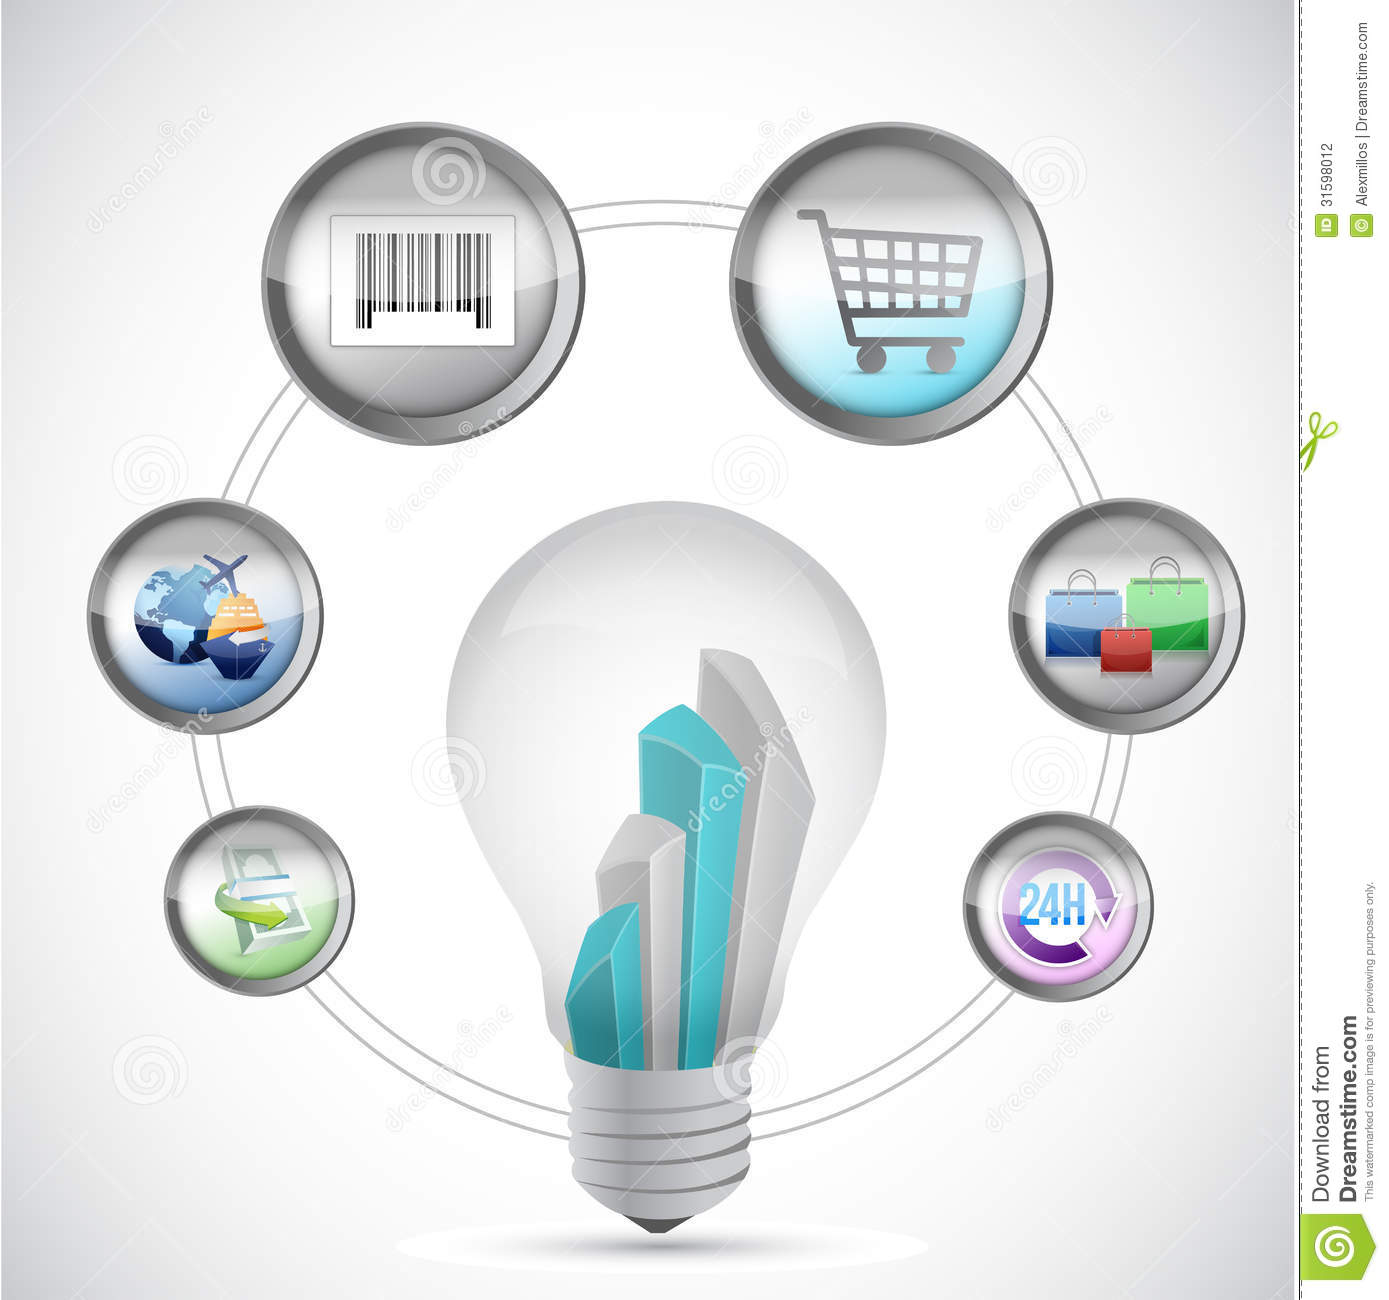 Idea e commerce and online shopping concept stock for Idee online